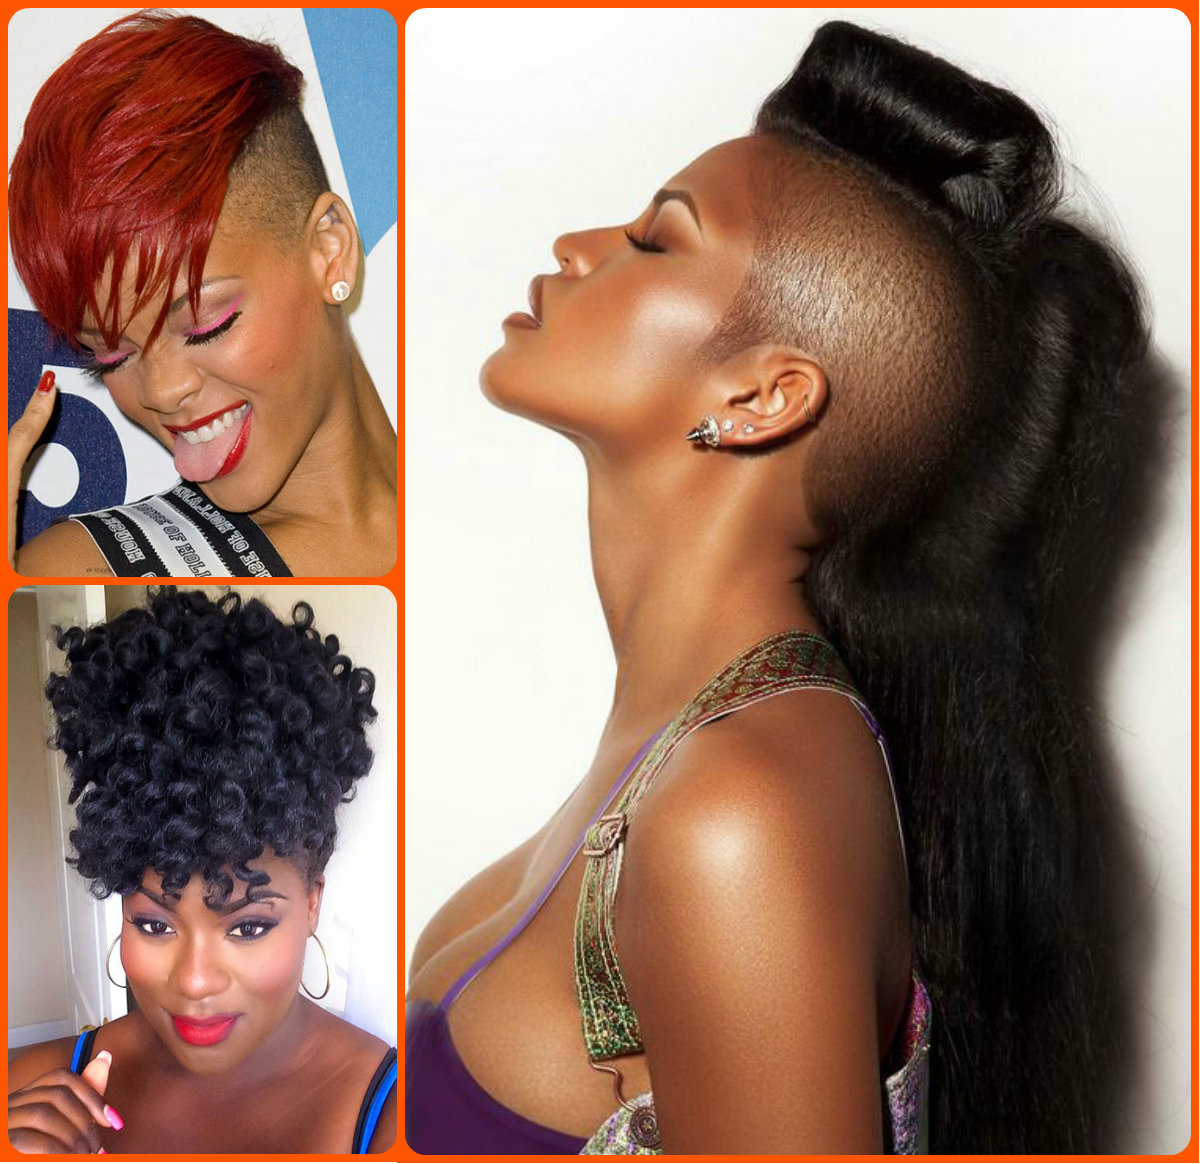 Jazzy Mohawk Hairstyles for Black Women | Hairstyles 2017, Hair ...